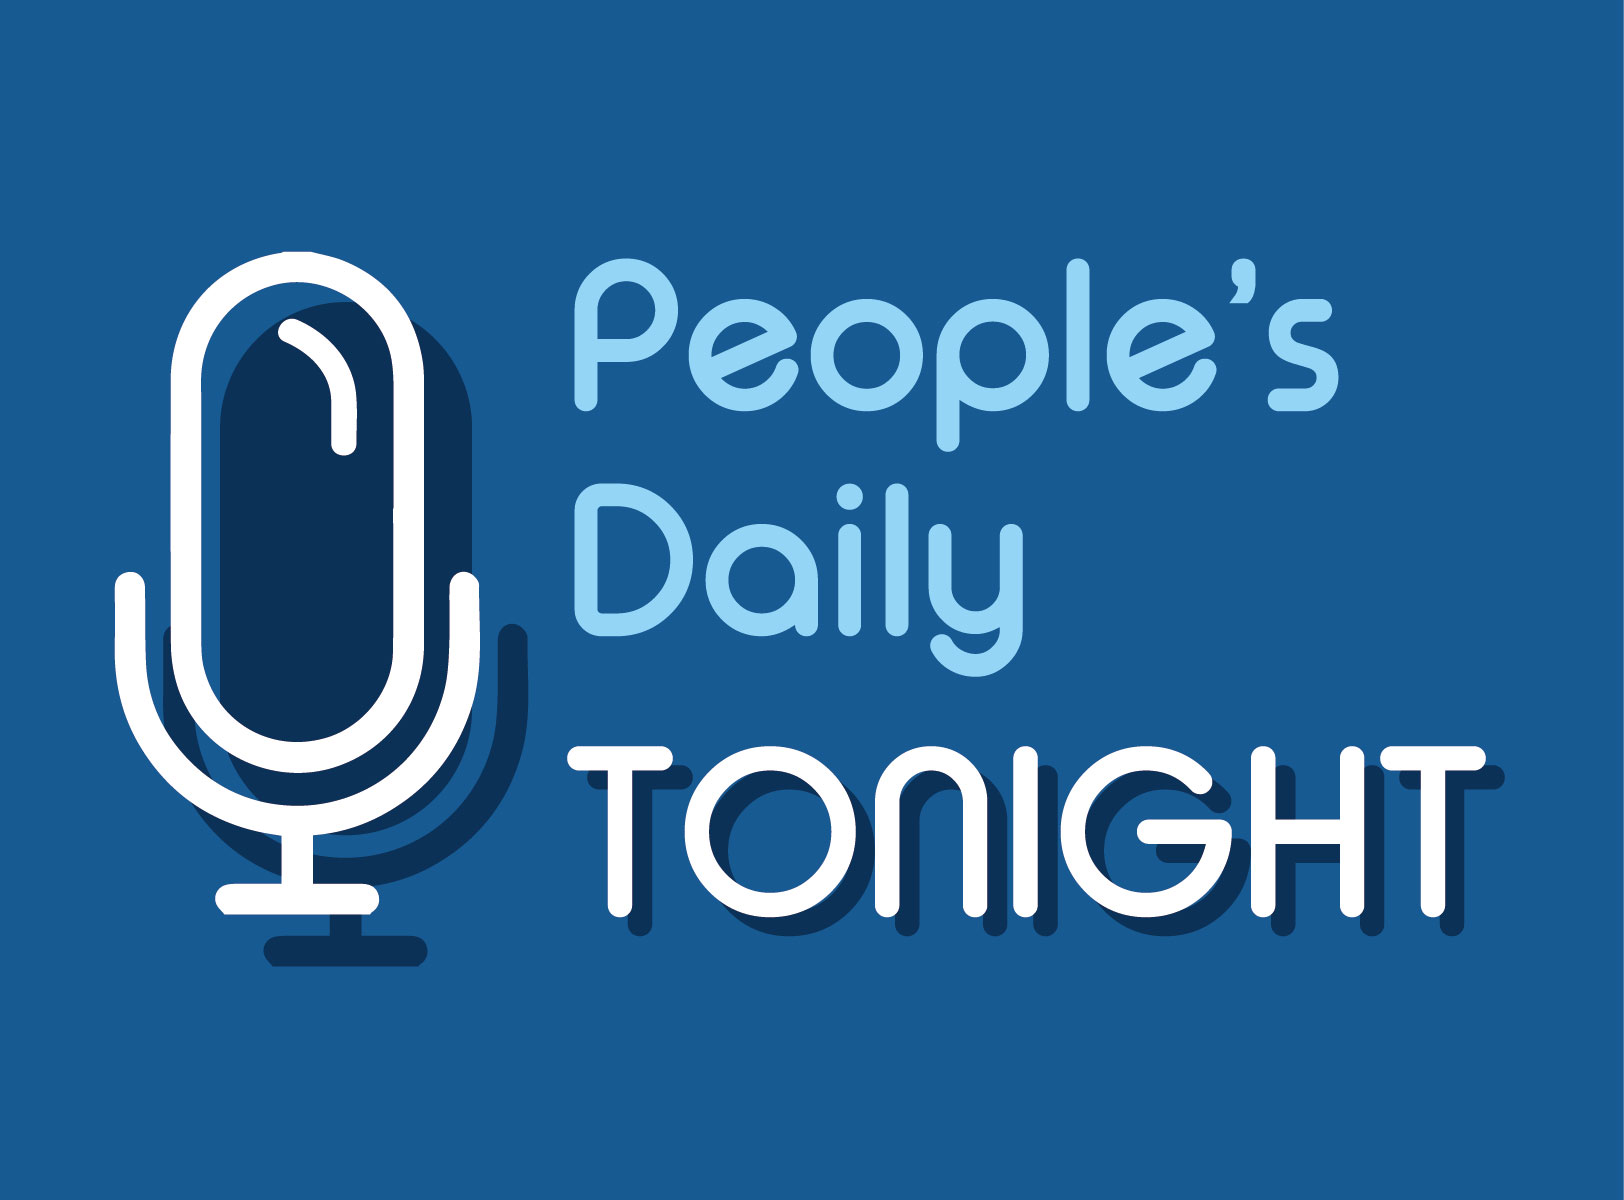 People's Daily Tonight: Podcast News (7/17/2019 Wed.)